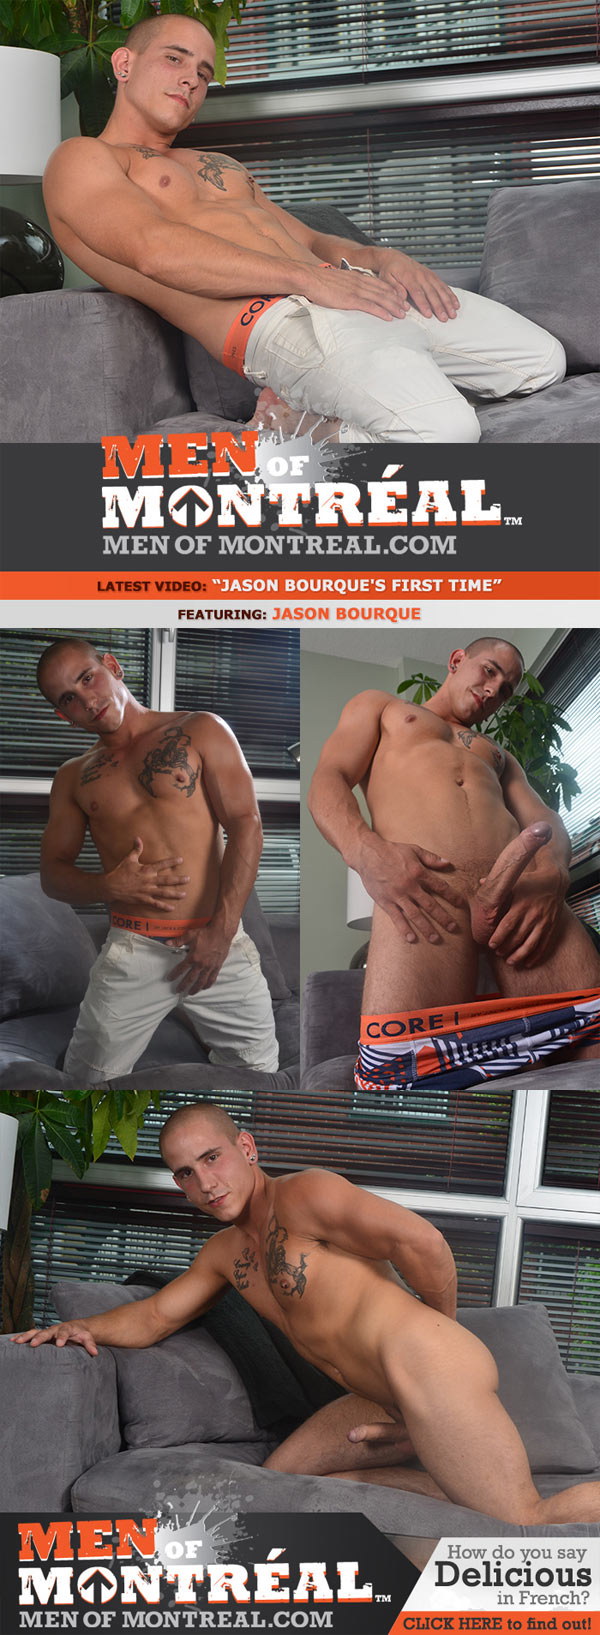 Jason Bourque's First Time at MenOfMontreal